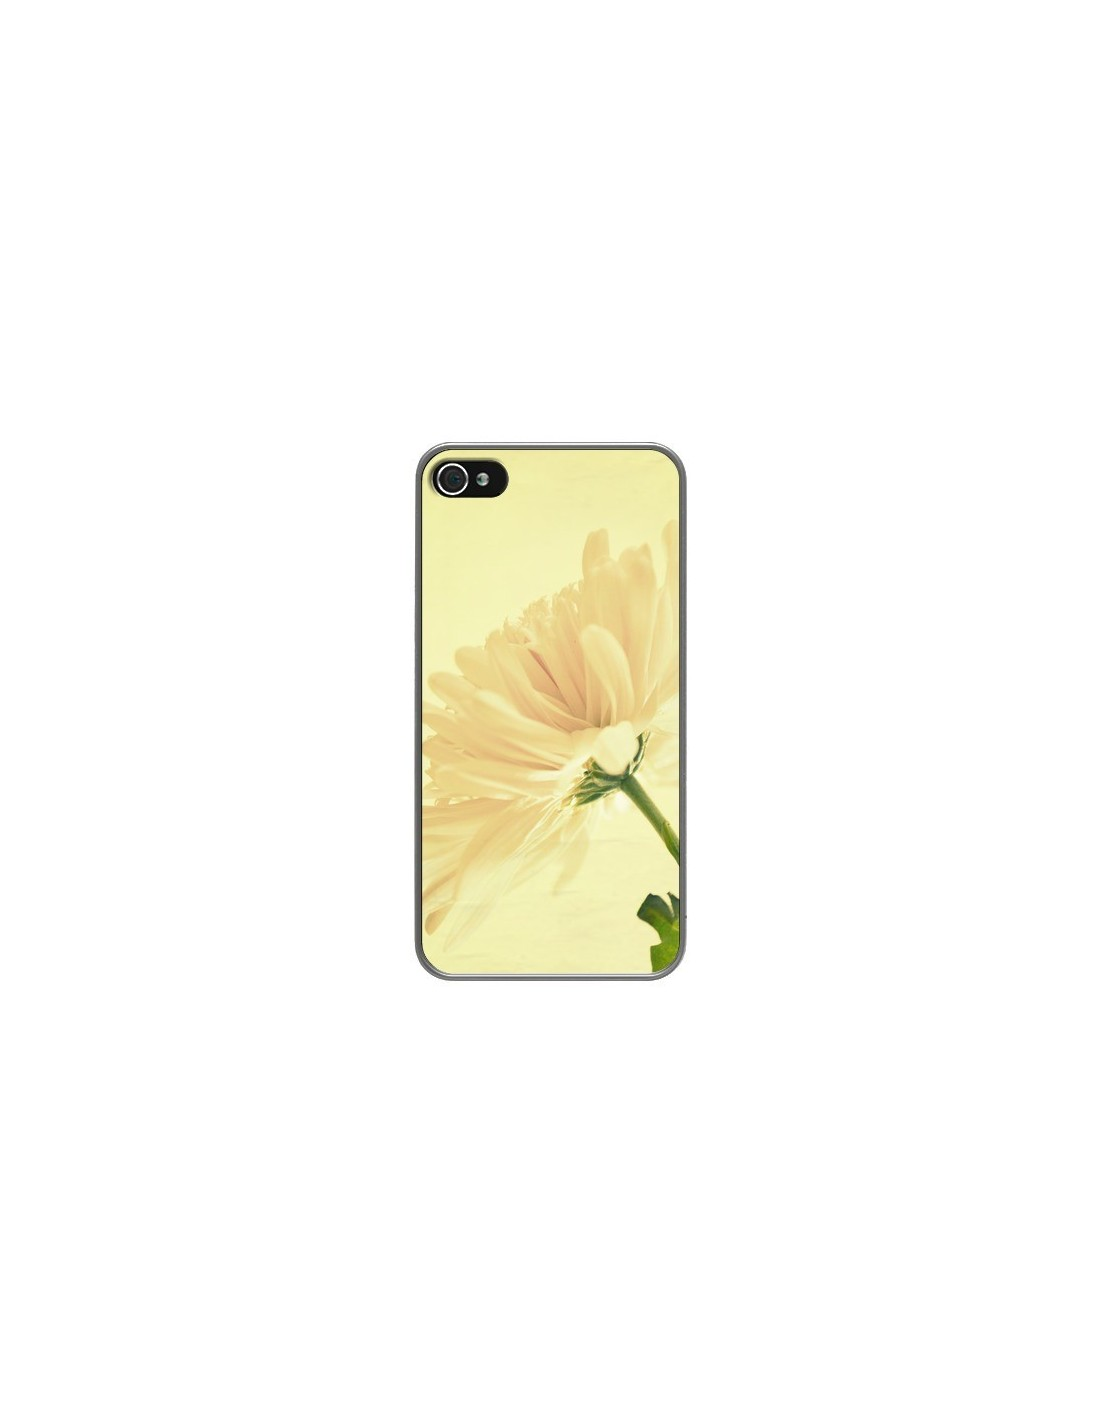 how to put pictures from iphone to computer coque fleurs pour iphone 4 et 4s r delean 20951